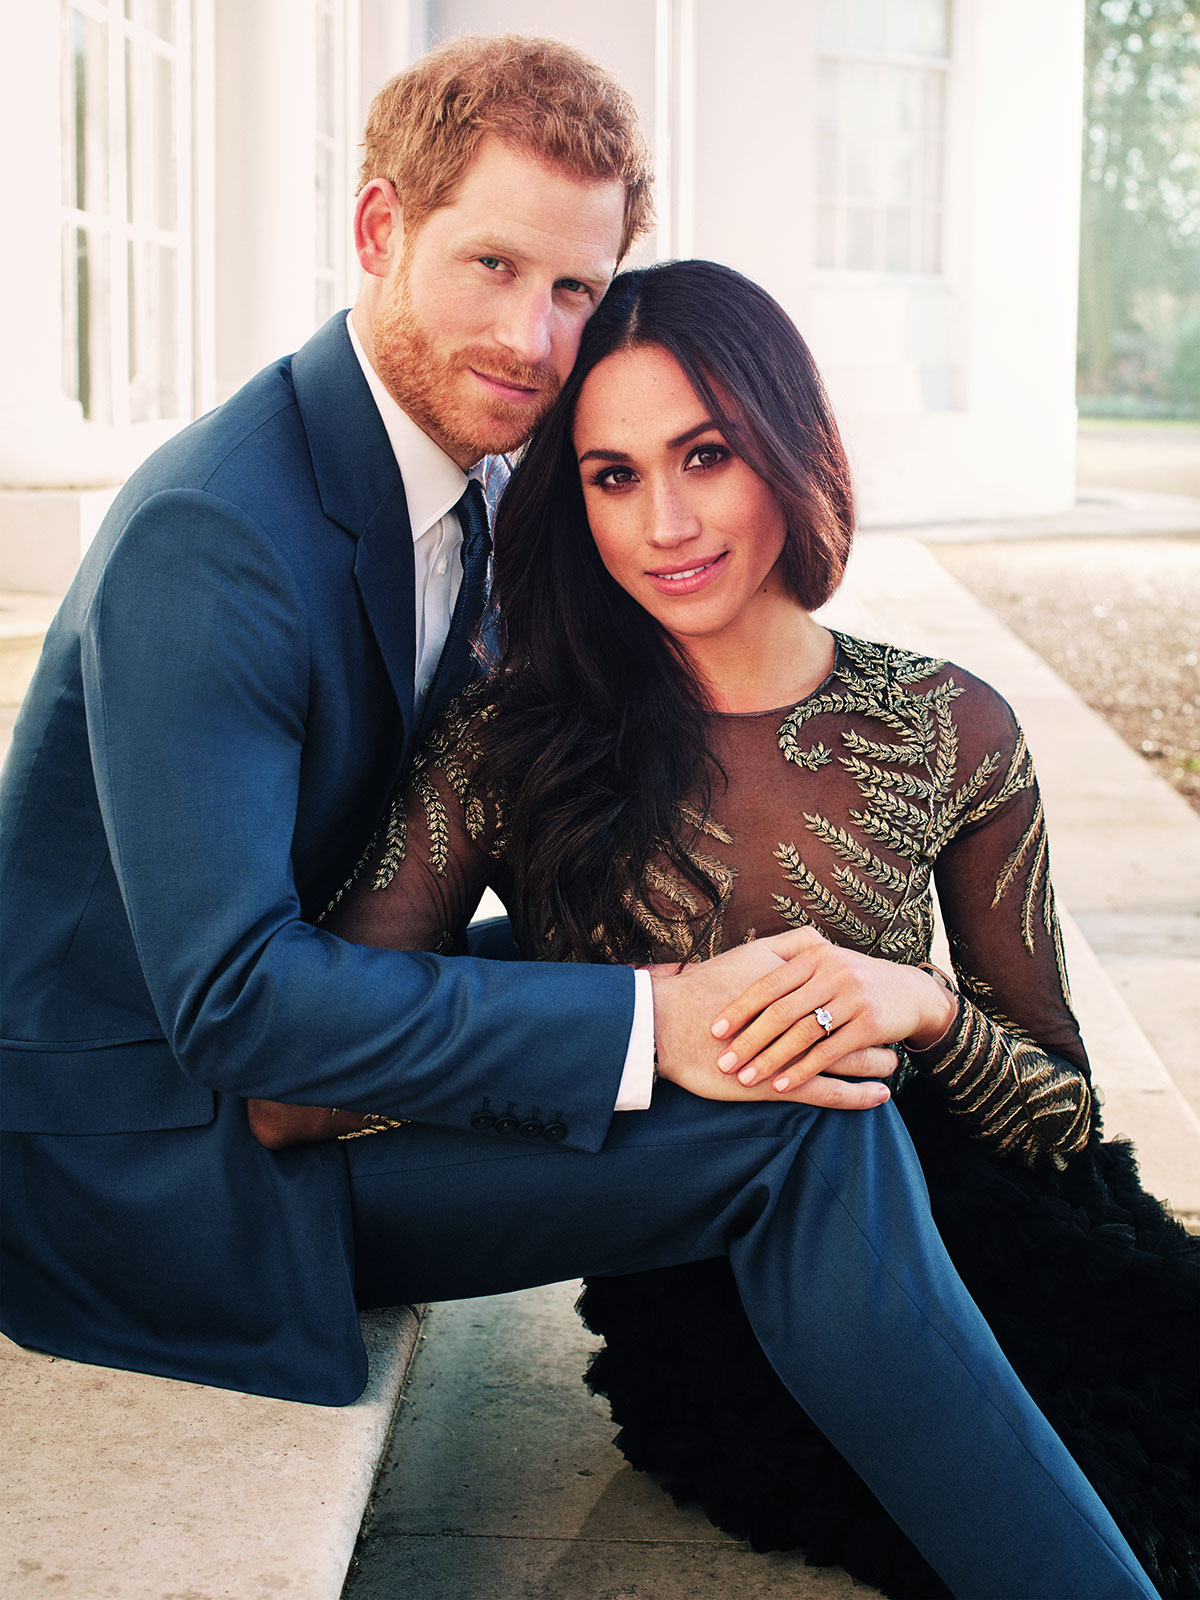 Prince Harry and Meghan Markle Are Inviting the Public to Their Wedding—Here's How to Score an Invite (We're Freaking Out!)